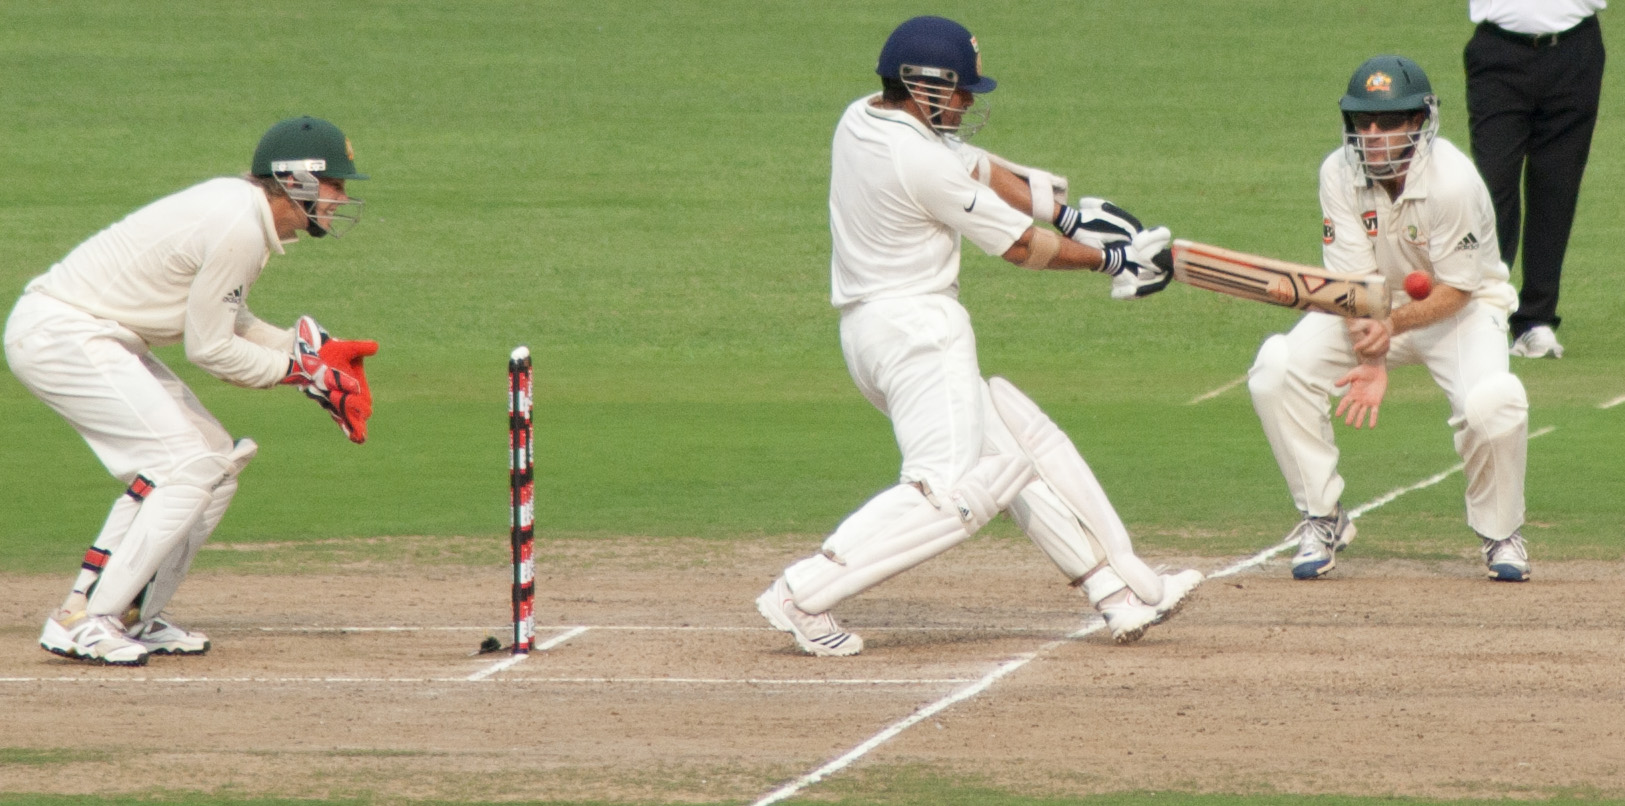 Sachin_Tendulkar_drives_a_ball_2010